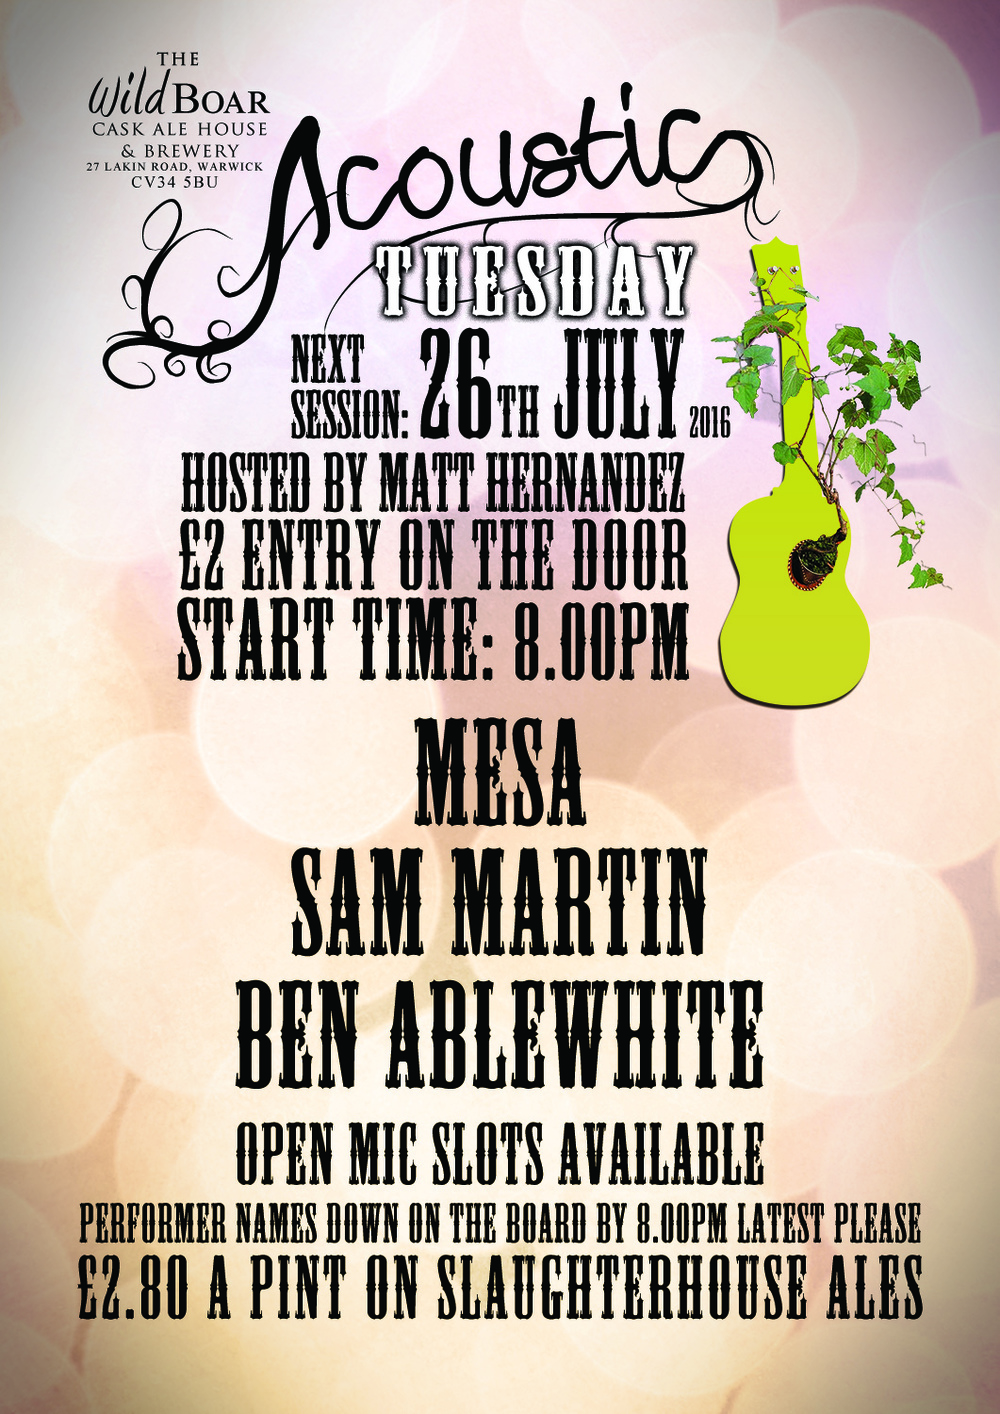 Acoustic Tuesday poster @ The Wild Boar Pub